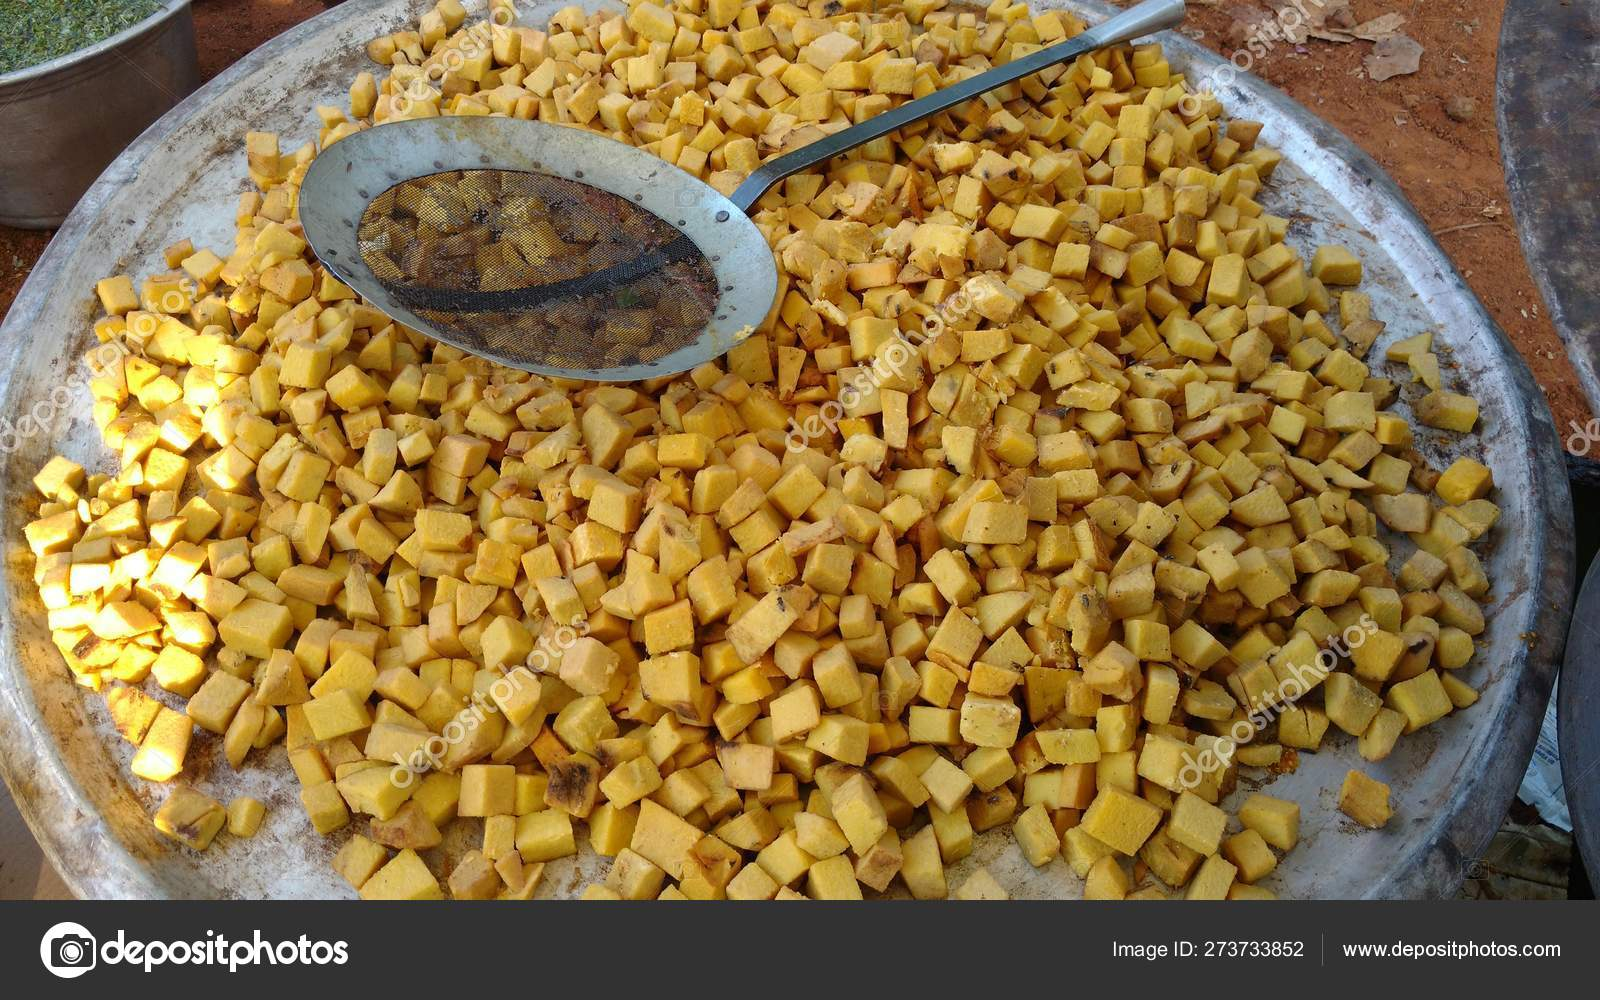 Elephant foot yam pieces to cook a south Indian recipe in a